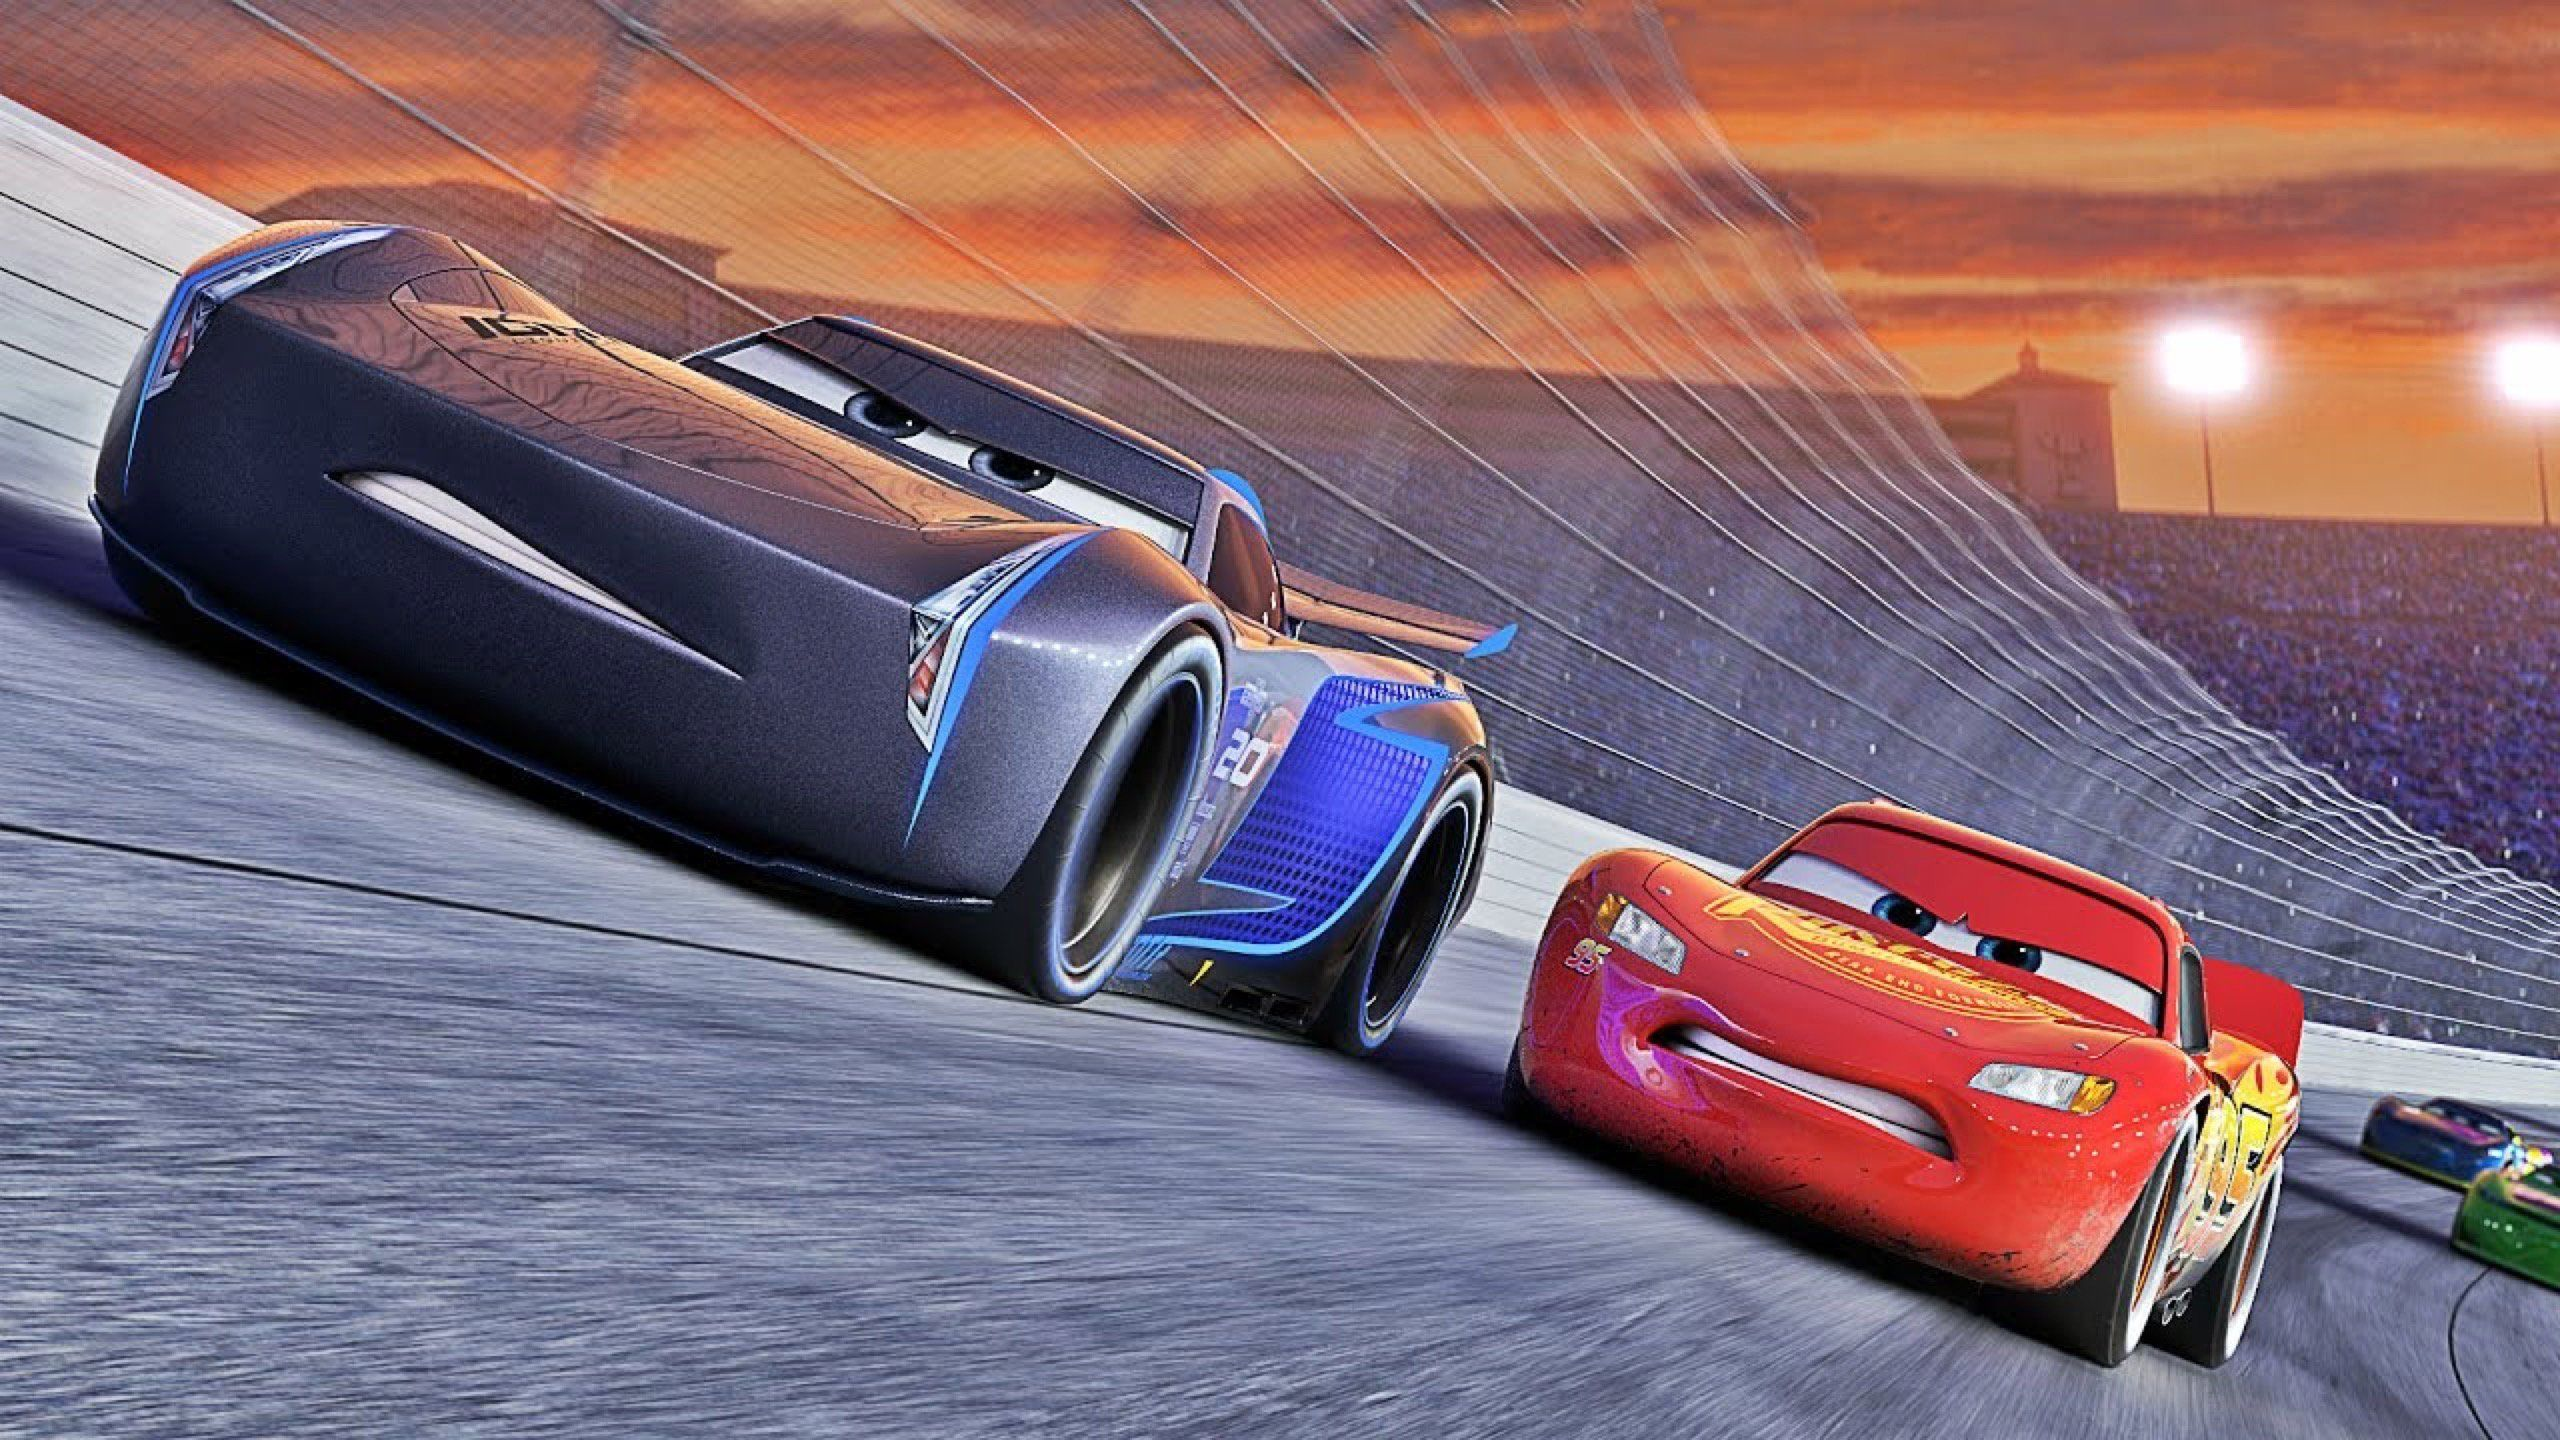 Jackson storm and lightning mcqueen cars 3 atdisney